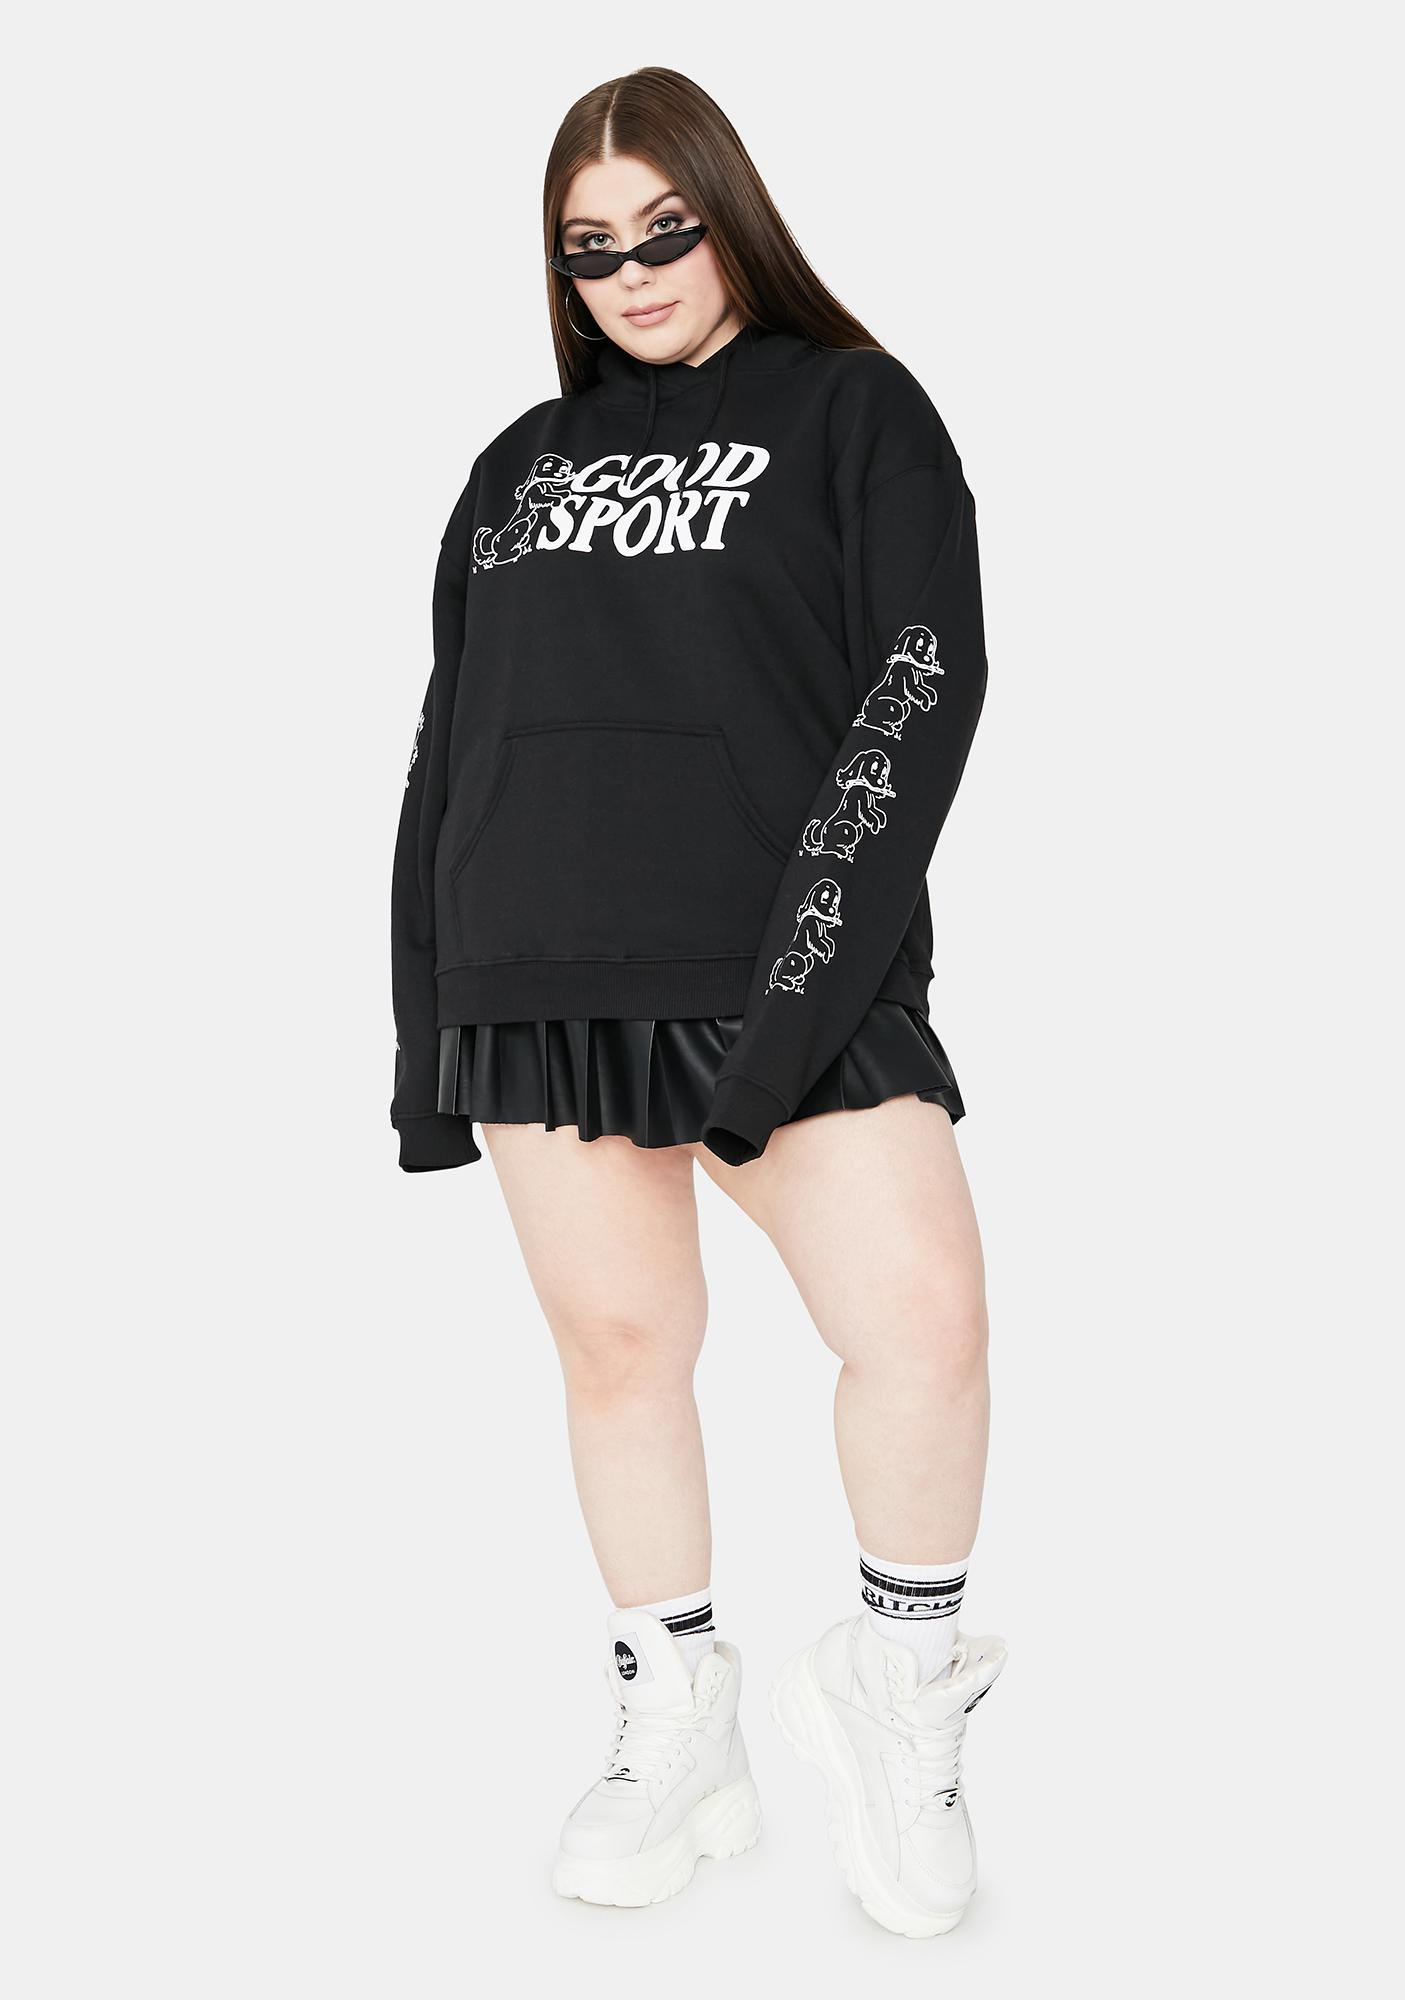 NEW GIRL ORDER Curve Bad Sport Graphic Hoodie